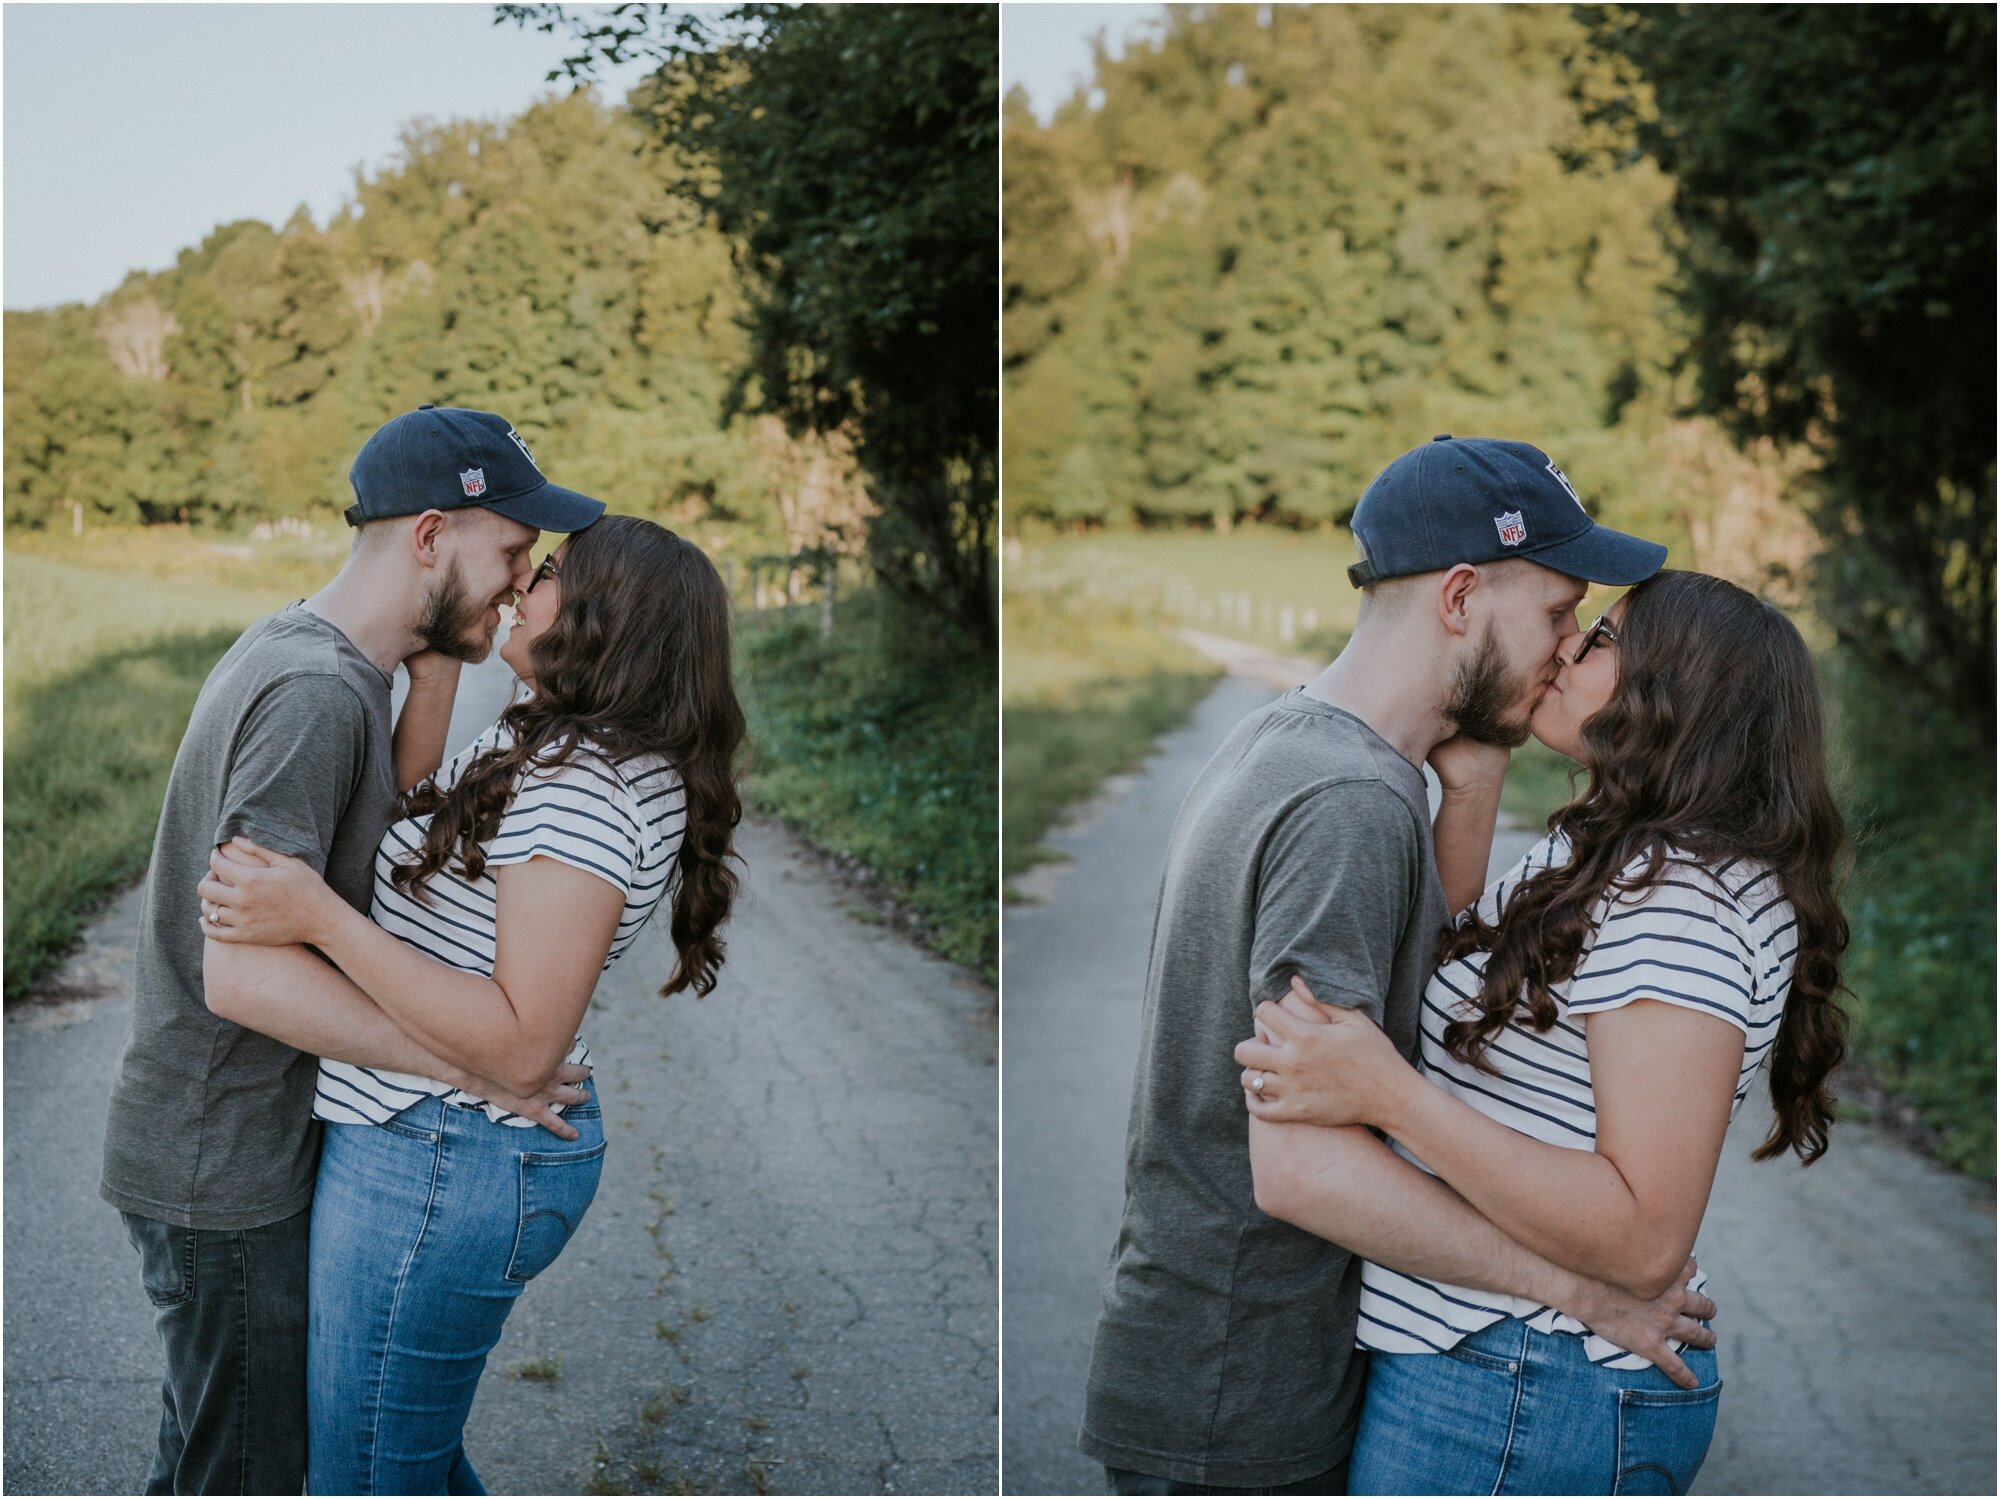 kingsport-tennessee-backyard-pond-bays-mountain-summer-engagement-session_0004.jpg